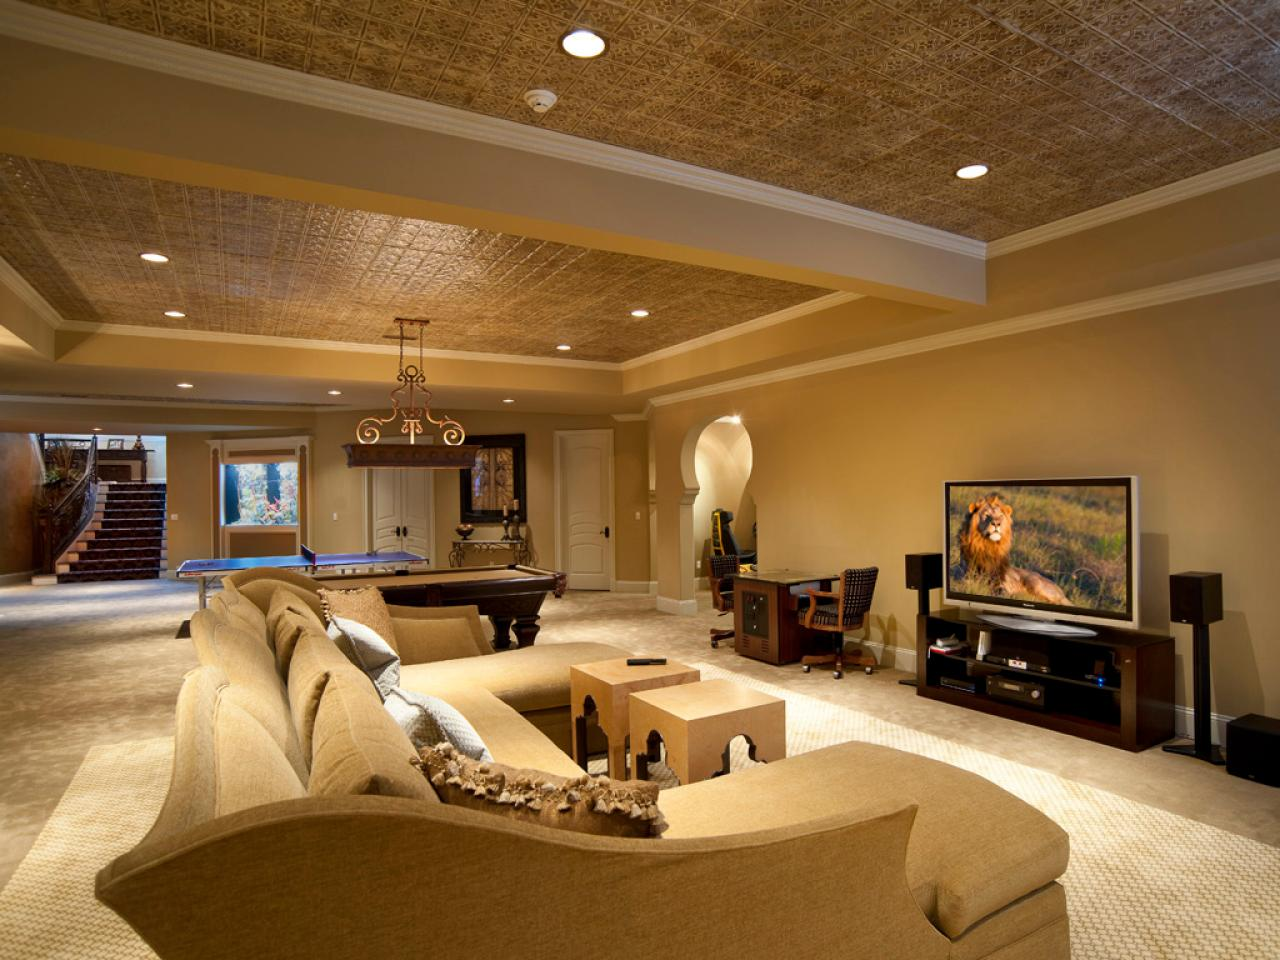 Basement Remodel Splurge Vs Save  Hgtv. Flooring Options Kitchen. Flooring For Kitchens Uk. Most Economical Kitchen Countertops. Floor To Ceiling Cabinets For Kitchen. Virtual Kitchen Countertops. White Kitchen Cabinets With Dark Granite Countertops. Dark Kitchen Cabinets With Light Countertops. Easy Kitchen Backsplash